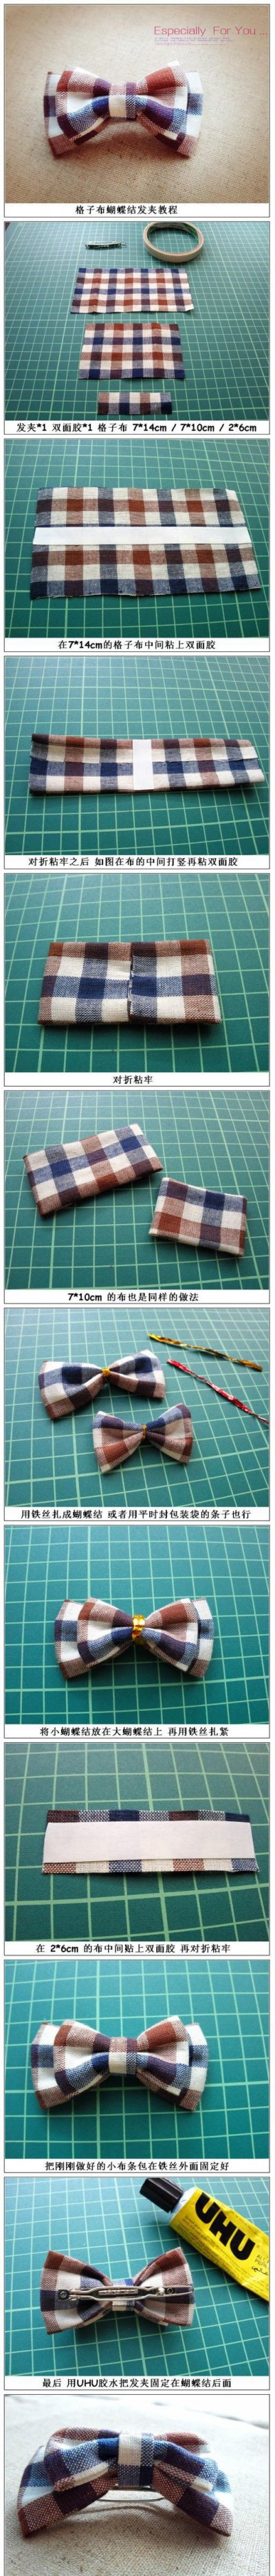 How to make beautiful plaid hair pin step by step DIY tutorial instructions